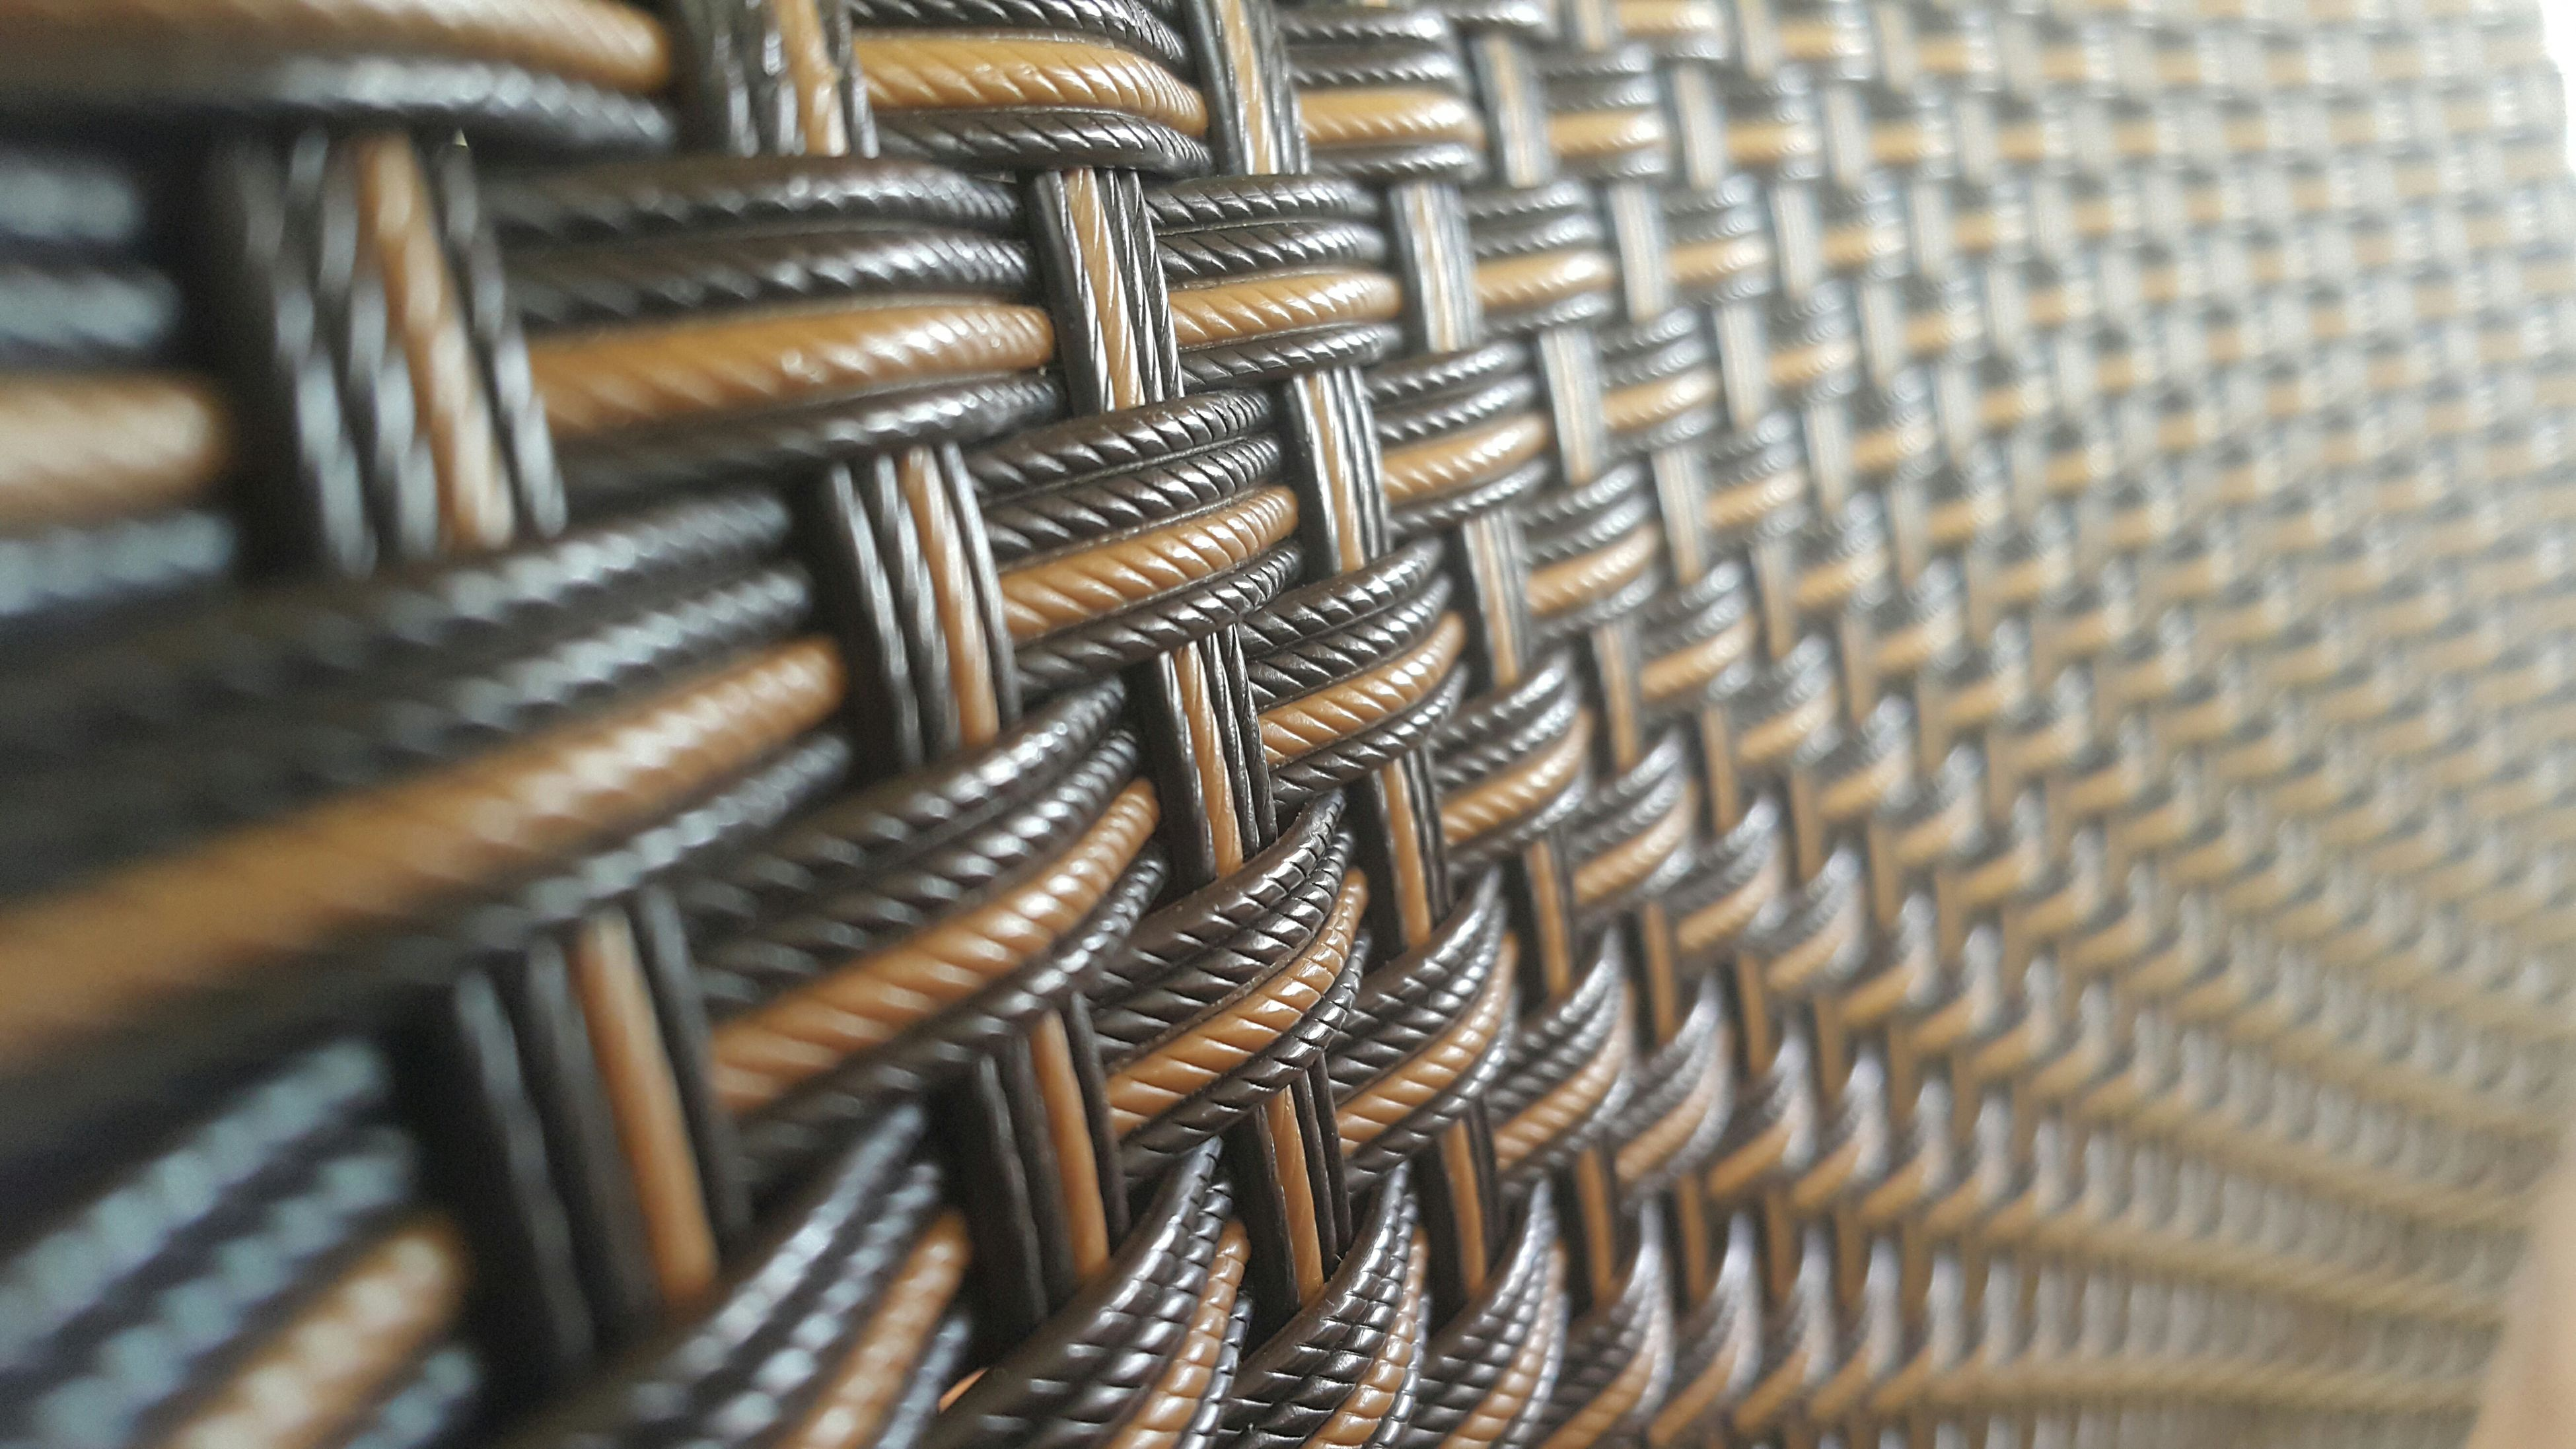 indoors, pattern, close-up, full frame, metal, backgrounds, still life, metallic, textured, repetition, large group of objects, design, wood - material, in a row, selective focus, no people, abundance, man made object, stack, focus on foreground